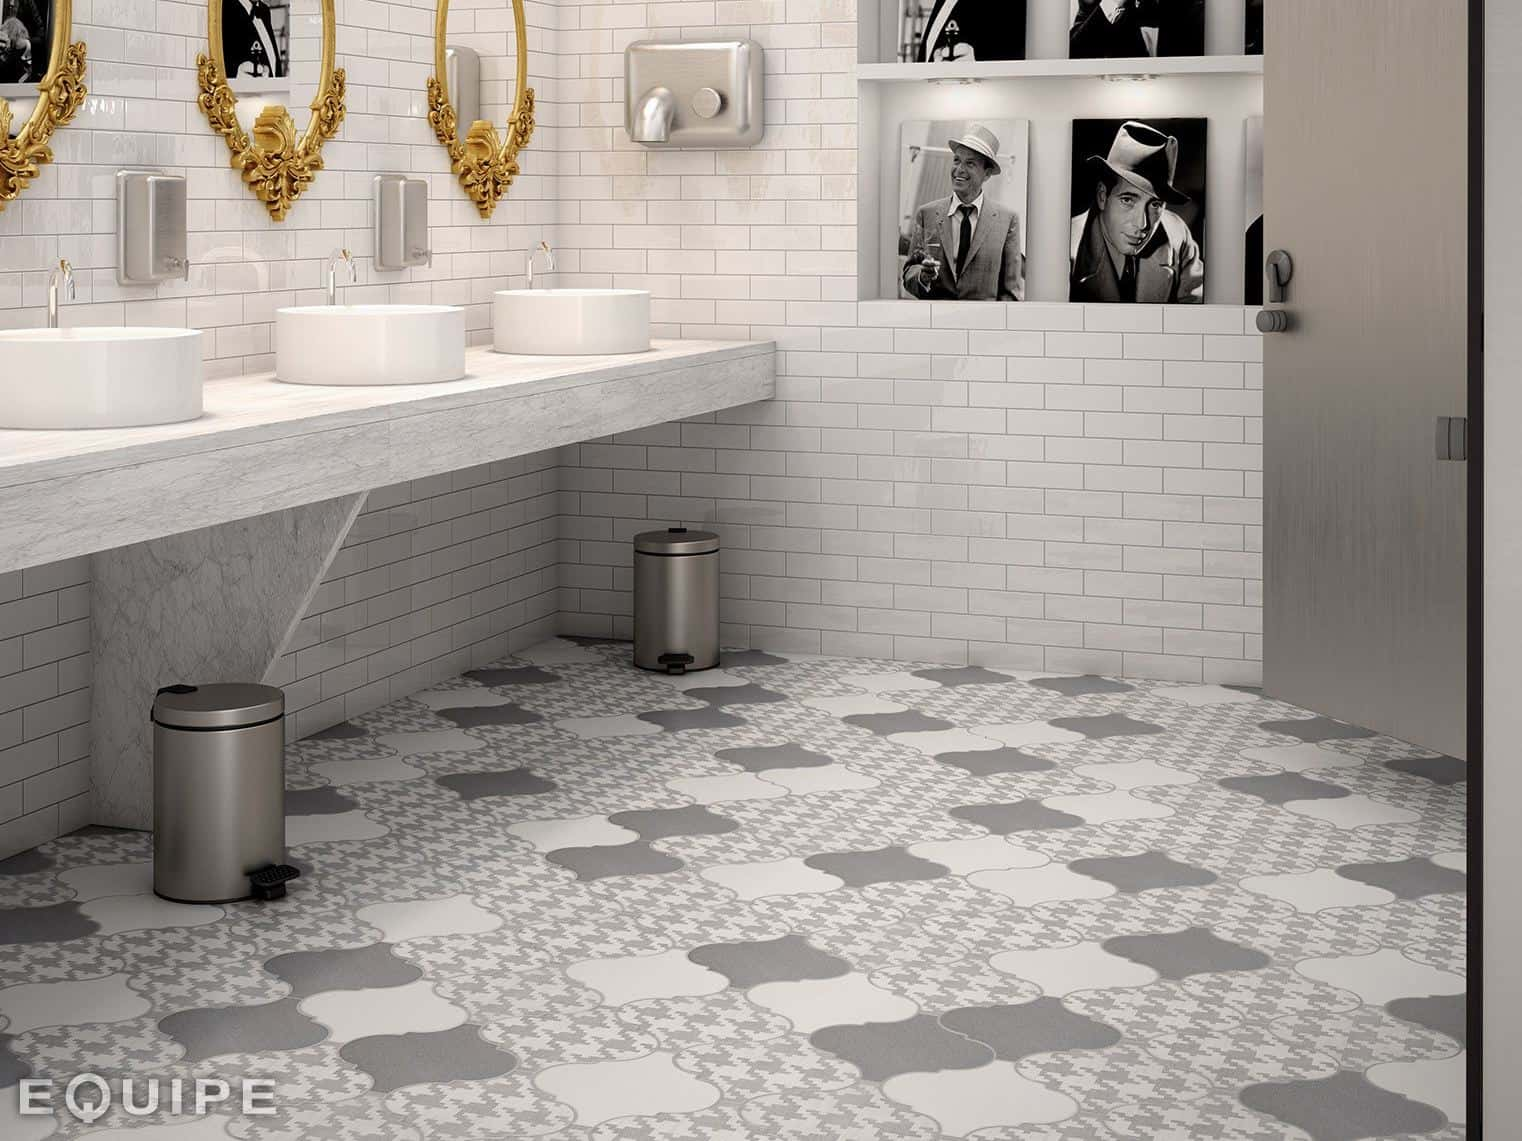 21 arabesque tile ideas for floor wall and backsplash view in gallery arabesque tile floor bathroom grey white 8g dailygadgetfo Images